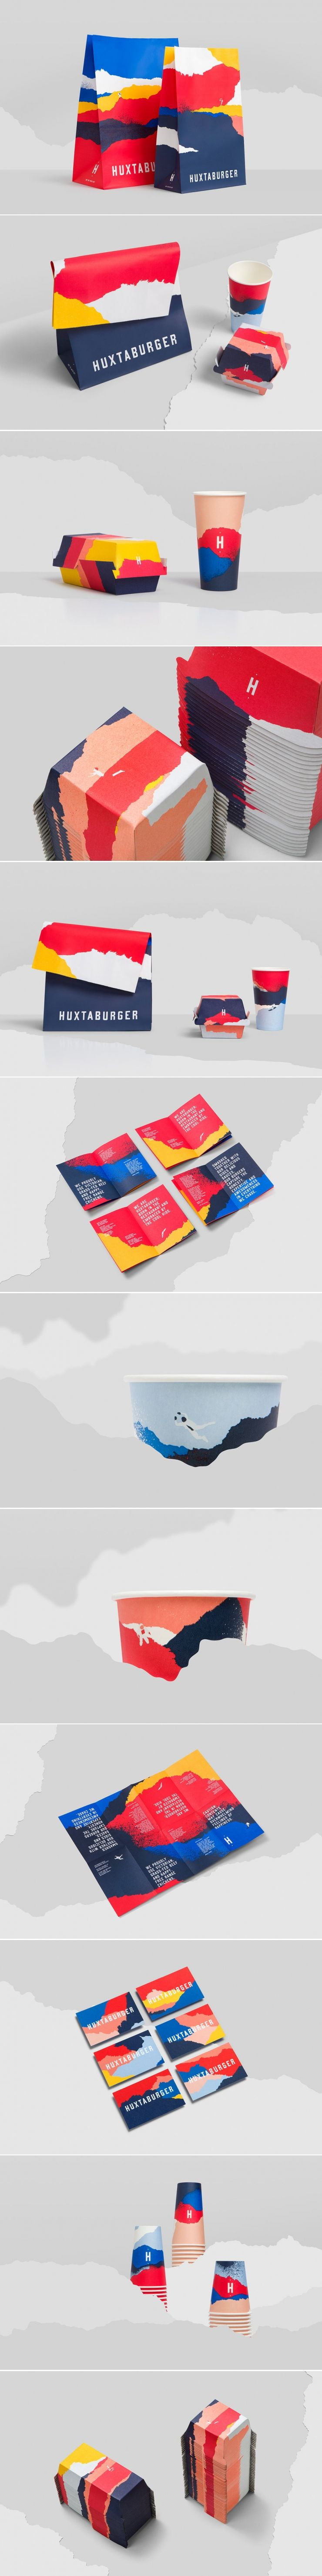 Check Out This Bold and Beautiful Branding and Packaging for Huxtaburger — The Dieline | Packaging & Branding Design & Innovation News